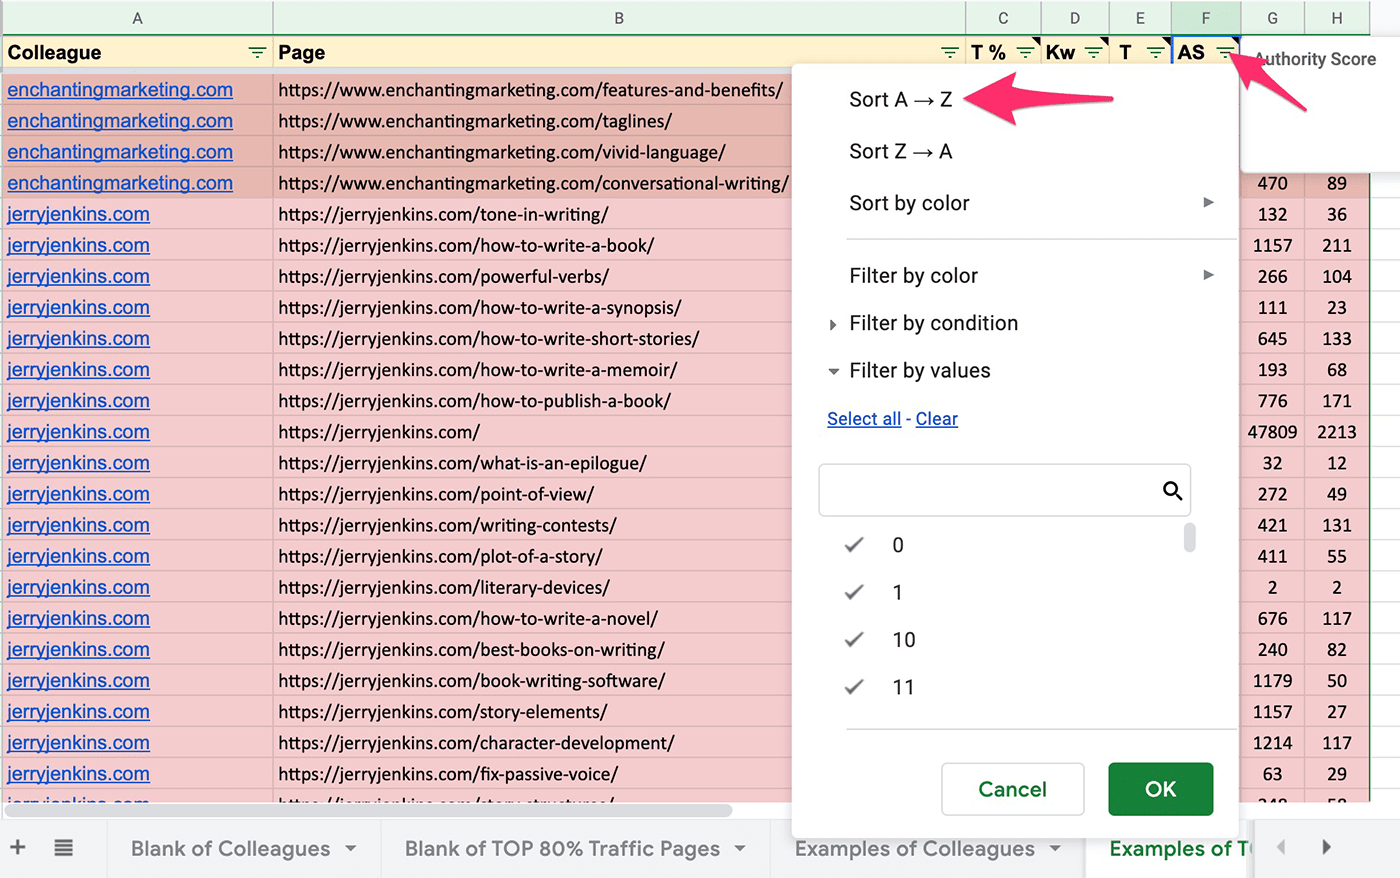 sorting competitors by Authority Score in google sheets